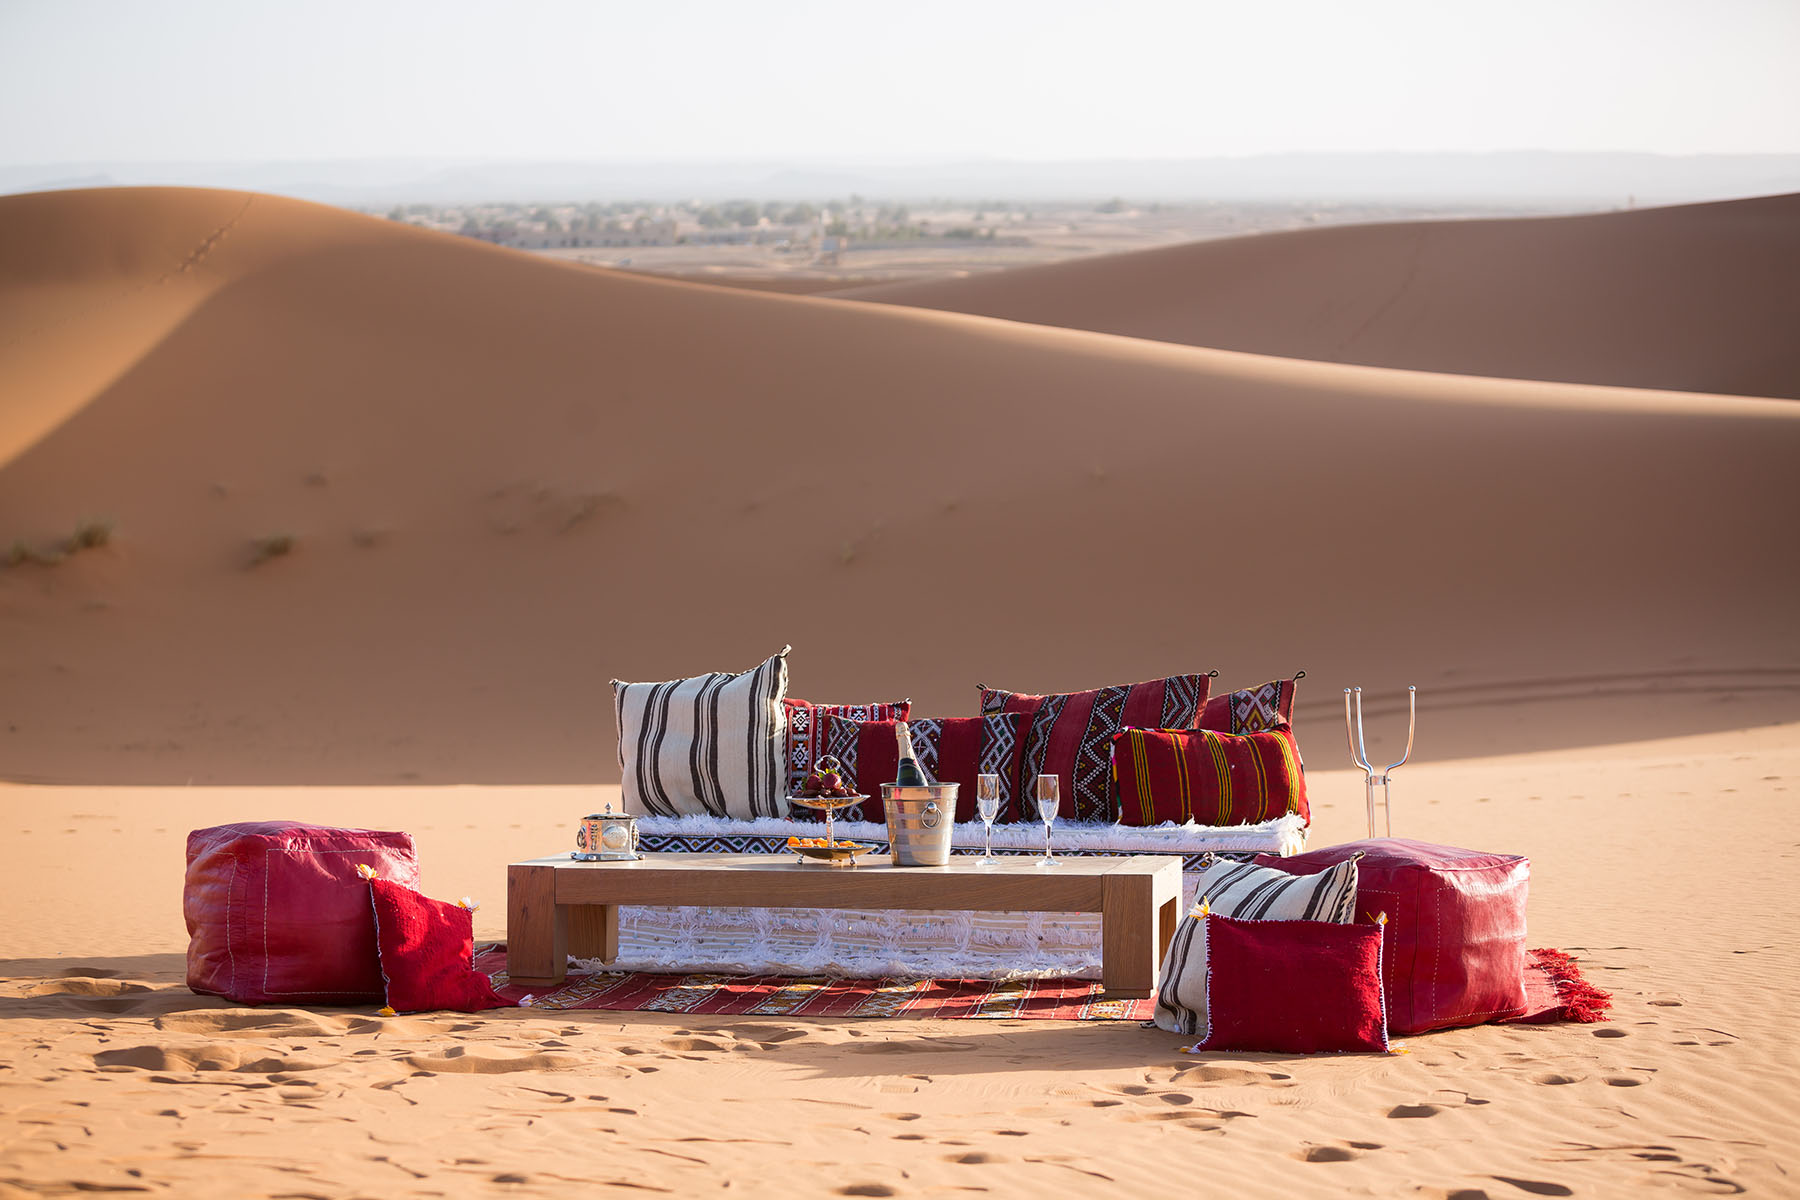 Week in the red dunes of Merzouga from Ouarzazate